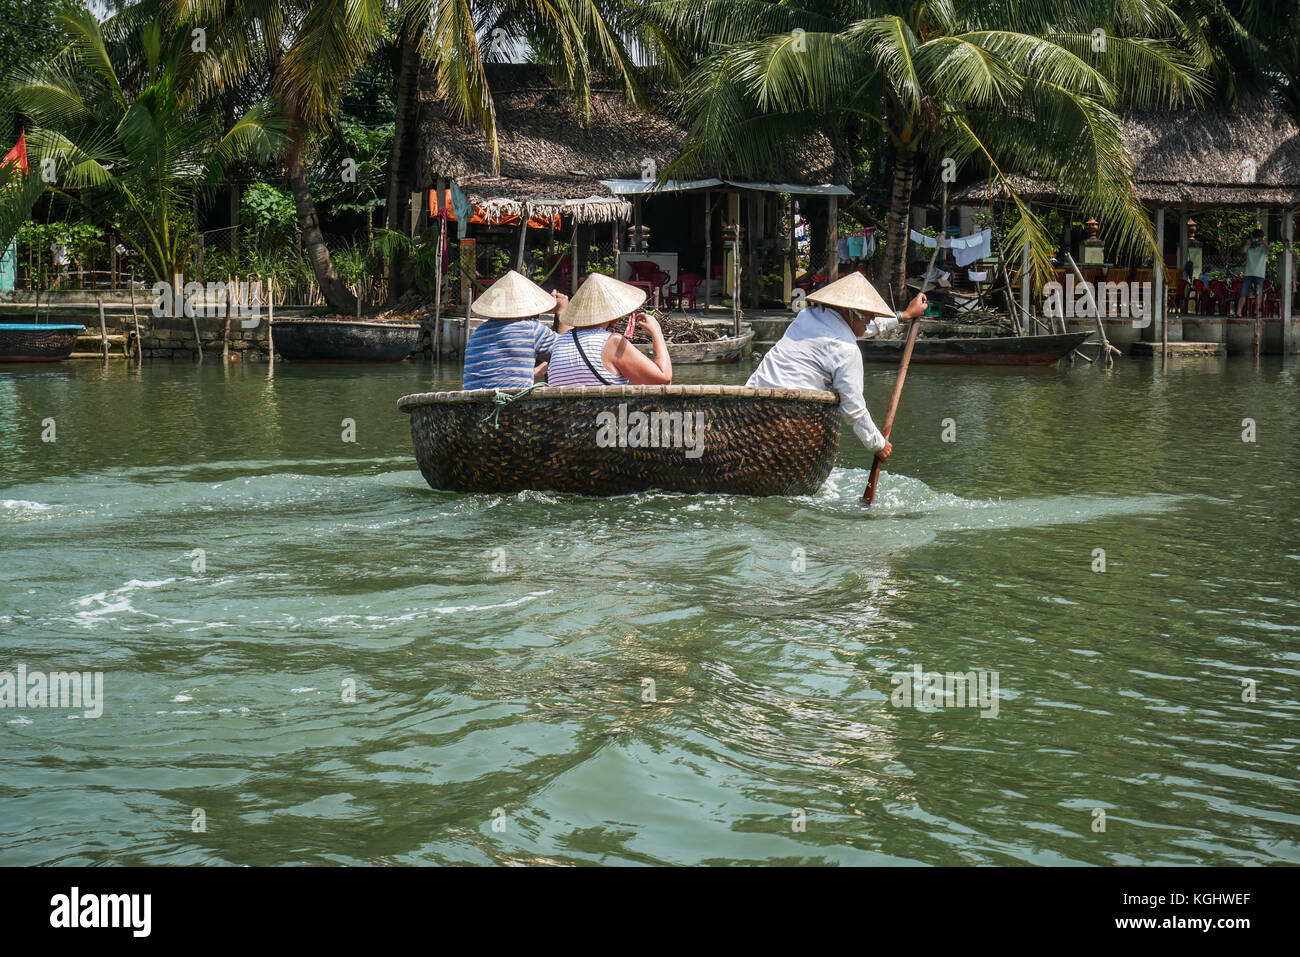 Tourists enjoying tour in traditional coracle boats on river Thu Bon near  Hoi An, Vietnam, south East Asia. - Stock Image